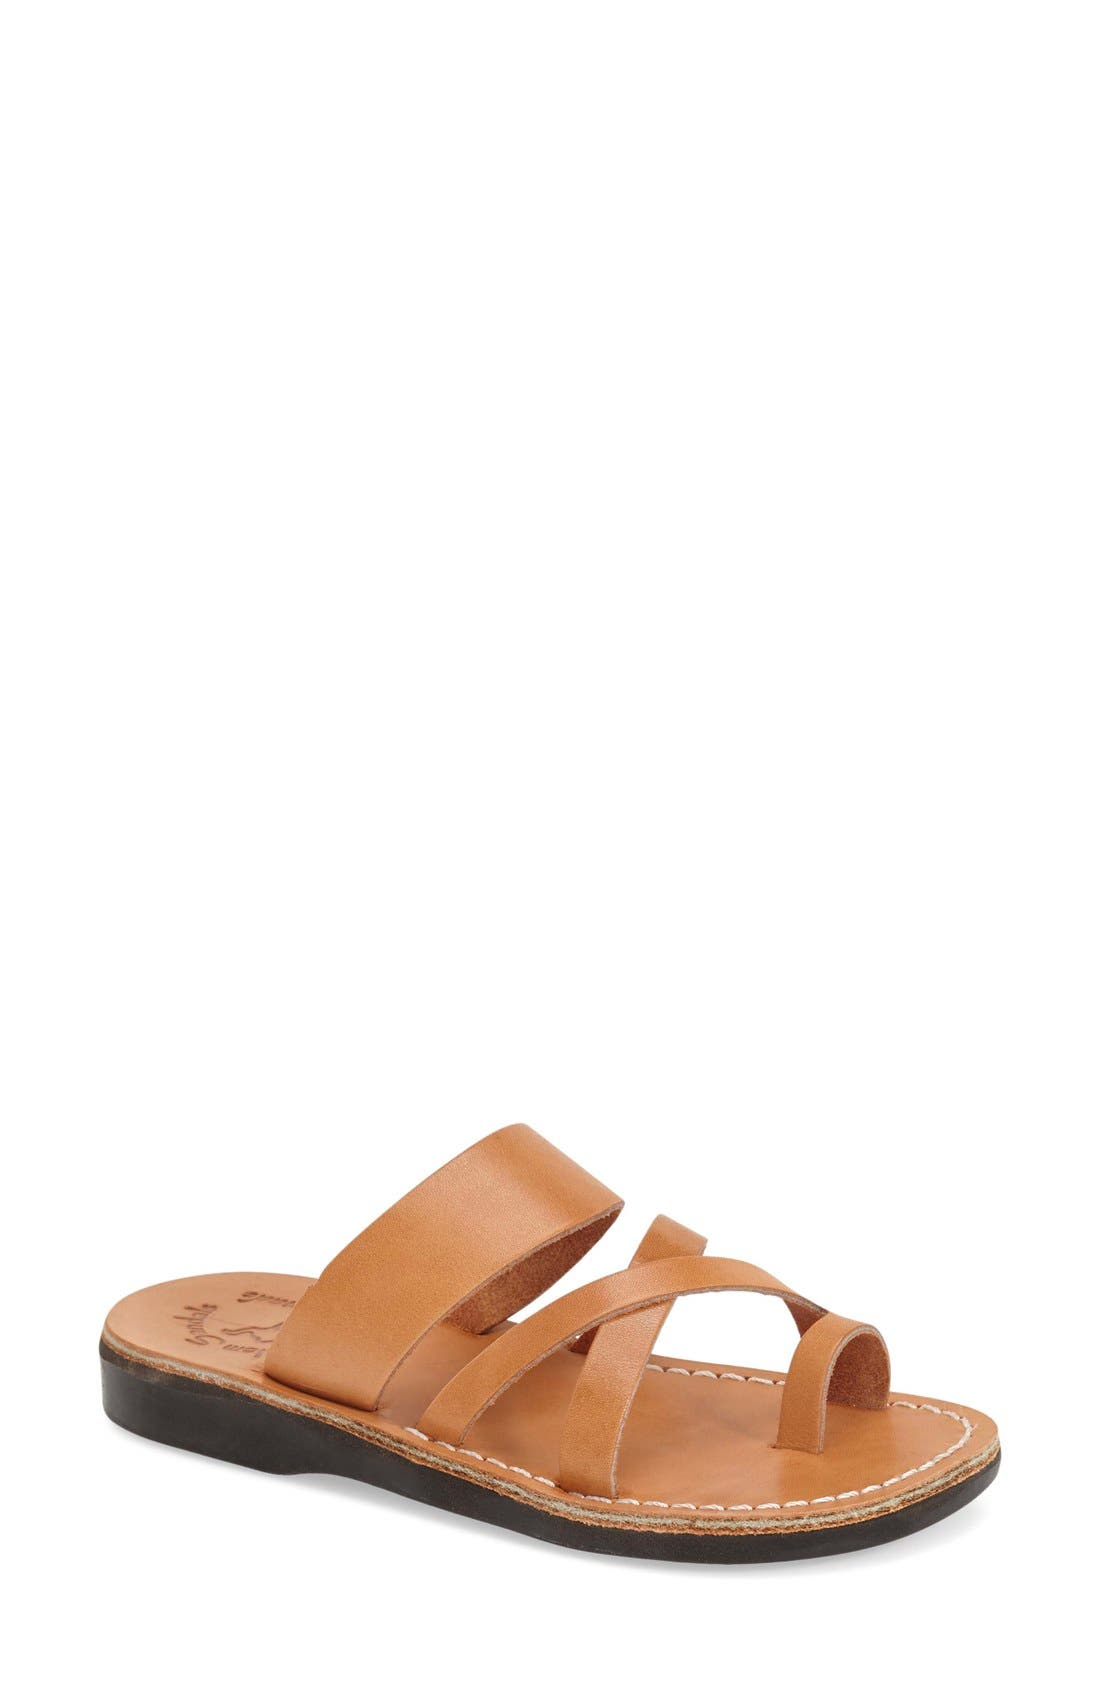 'The Good Shepard' Leather Sandal,                         Main,                         color, 201